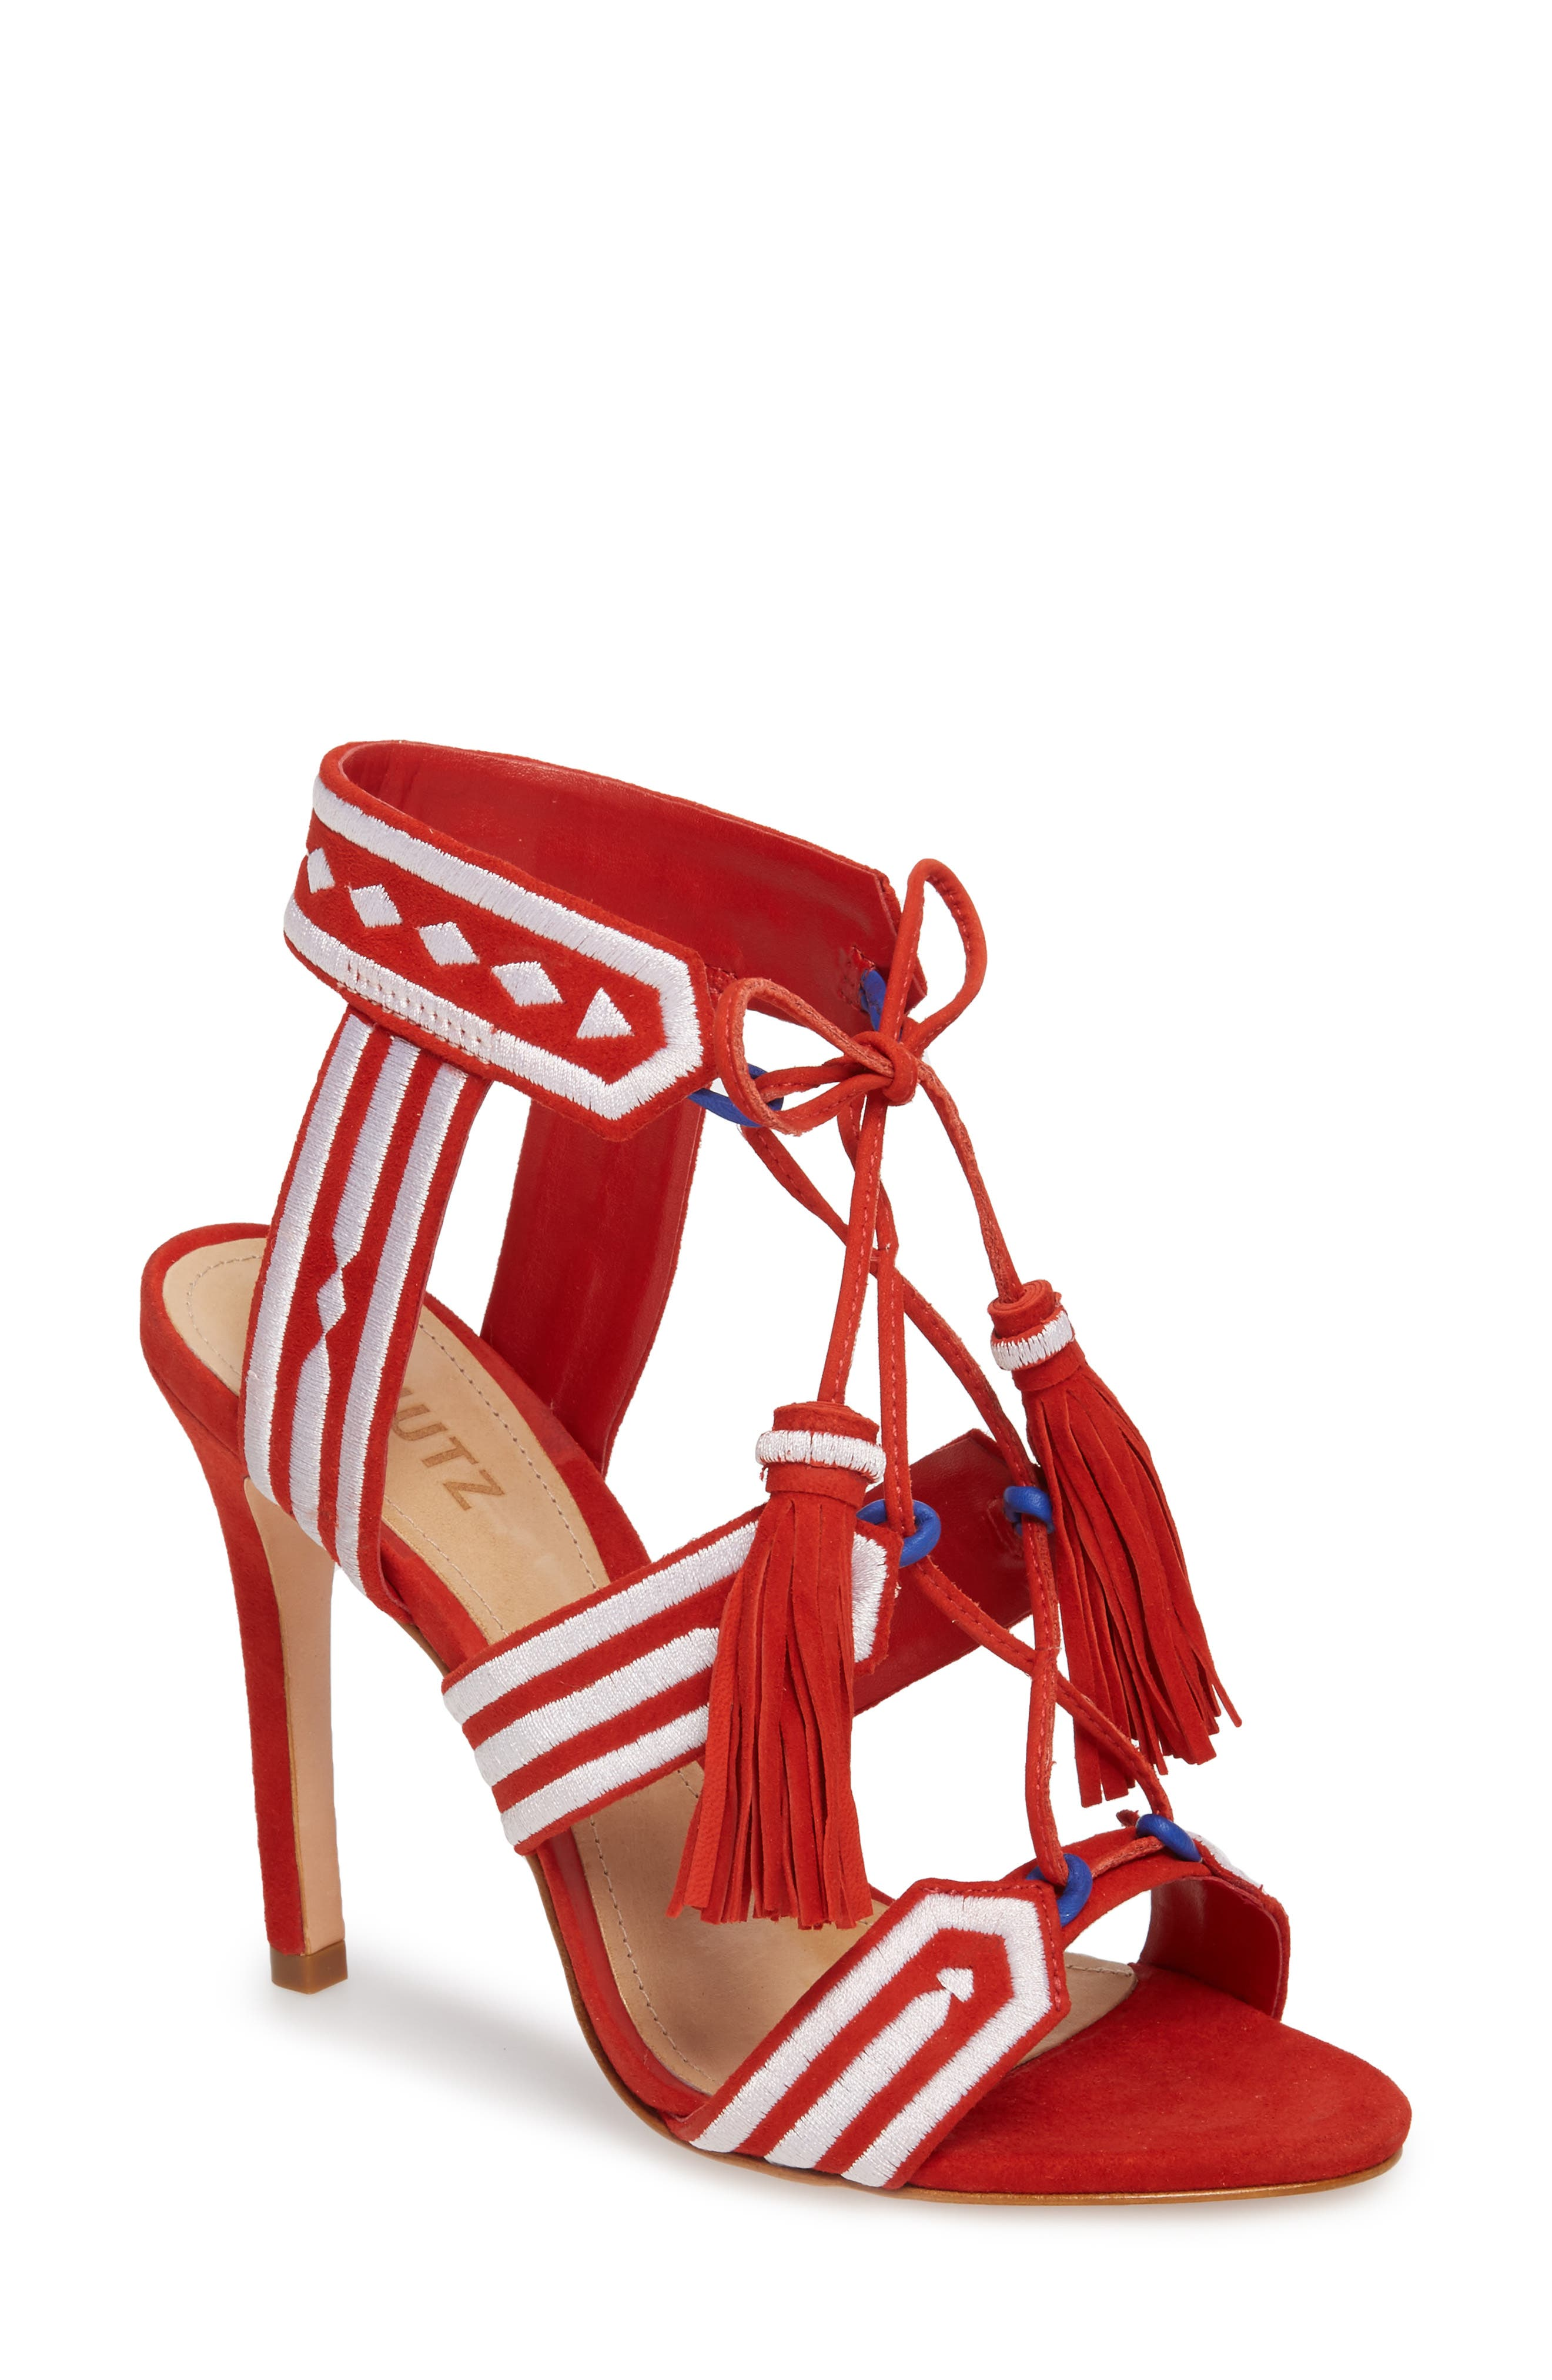 Eurica Embroidered Tassel Sandal,                             Main thumbnail 1, color,                             Nice Orange Suede